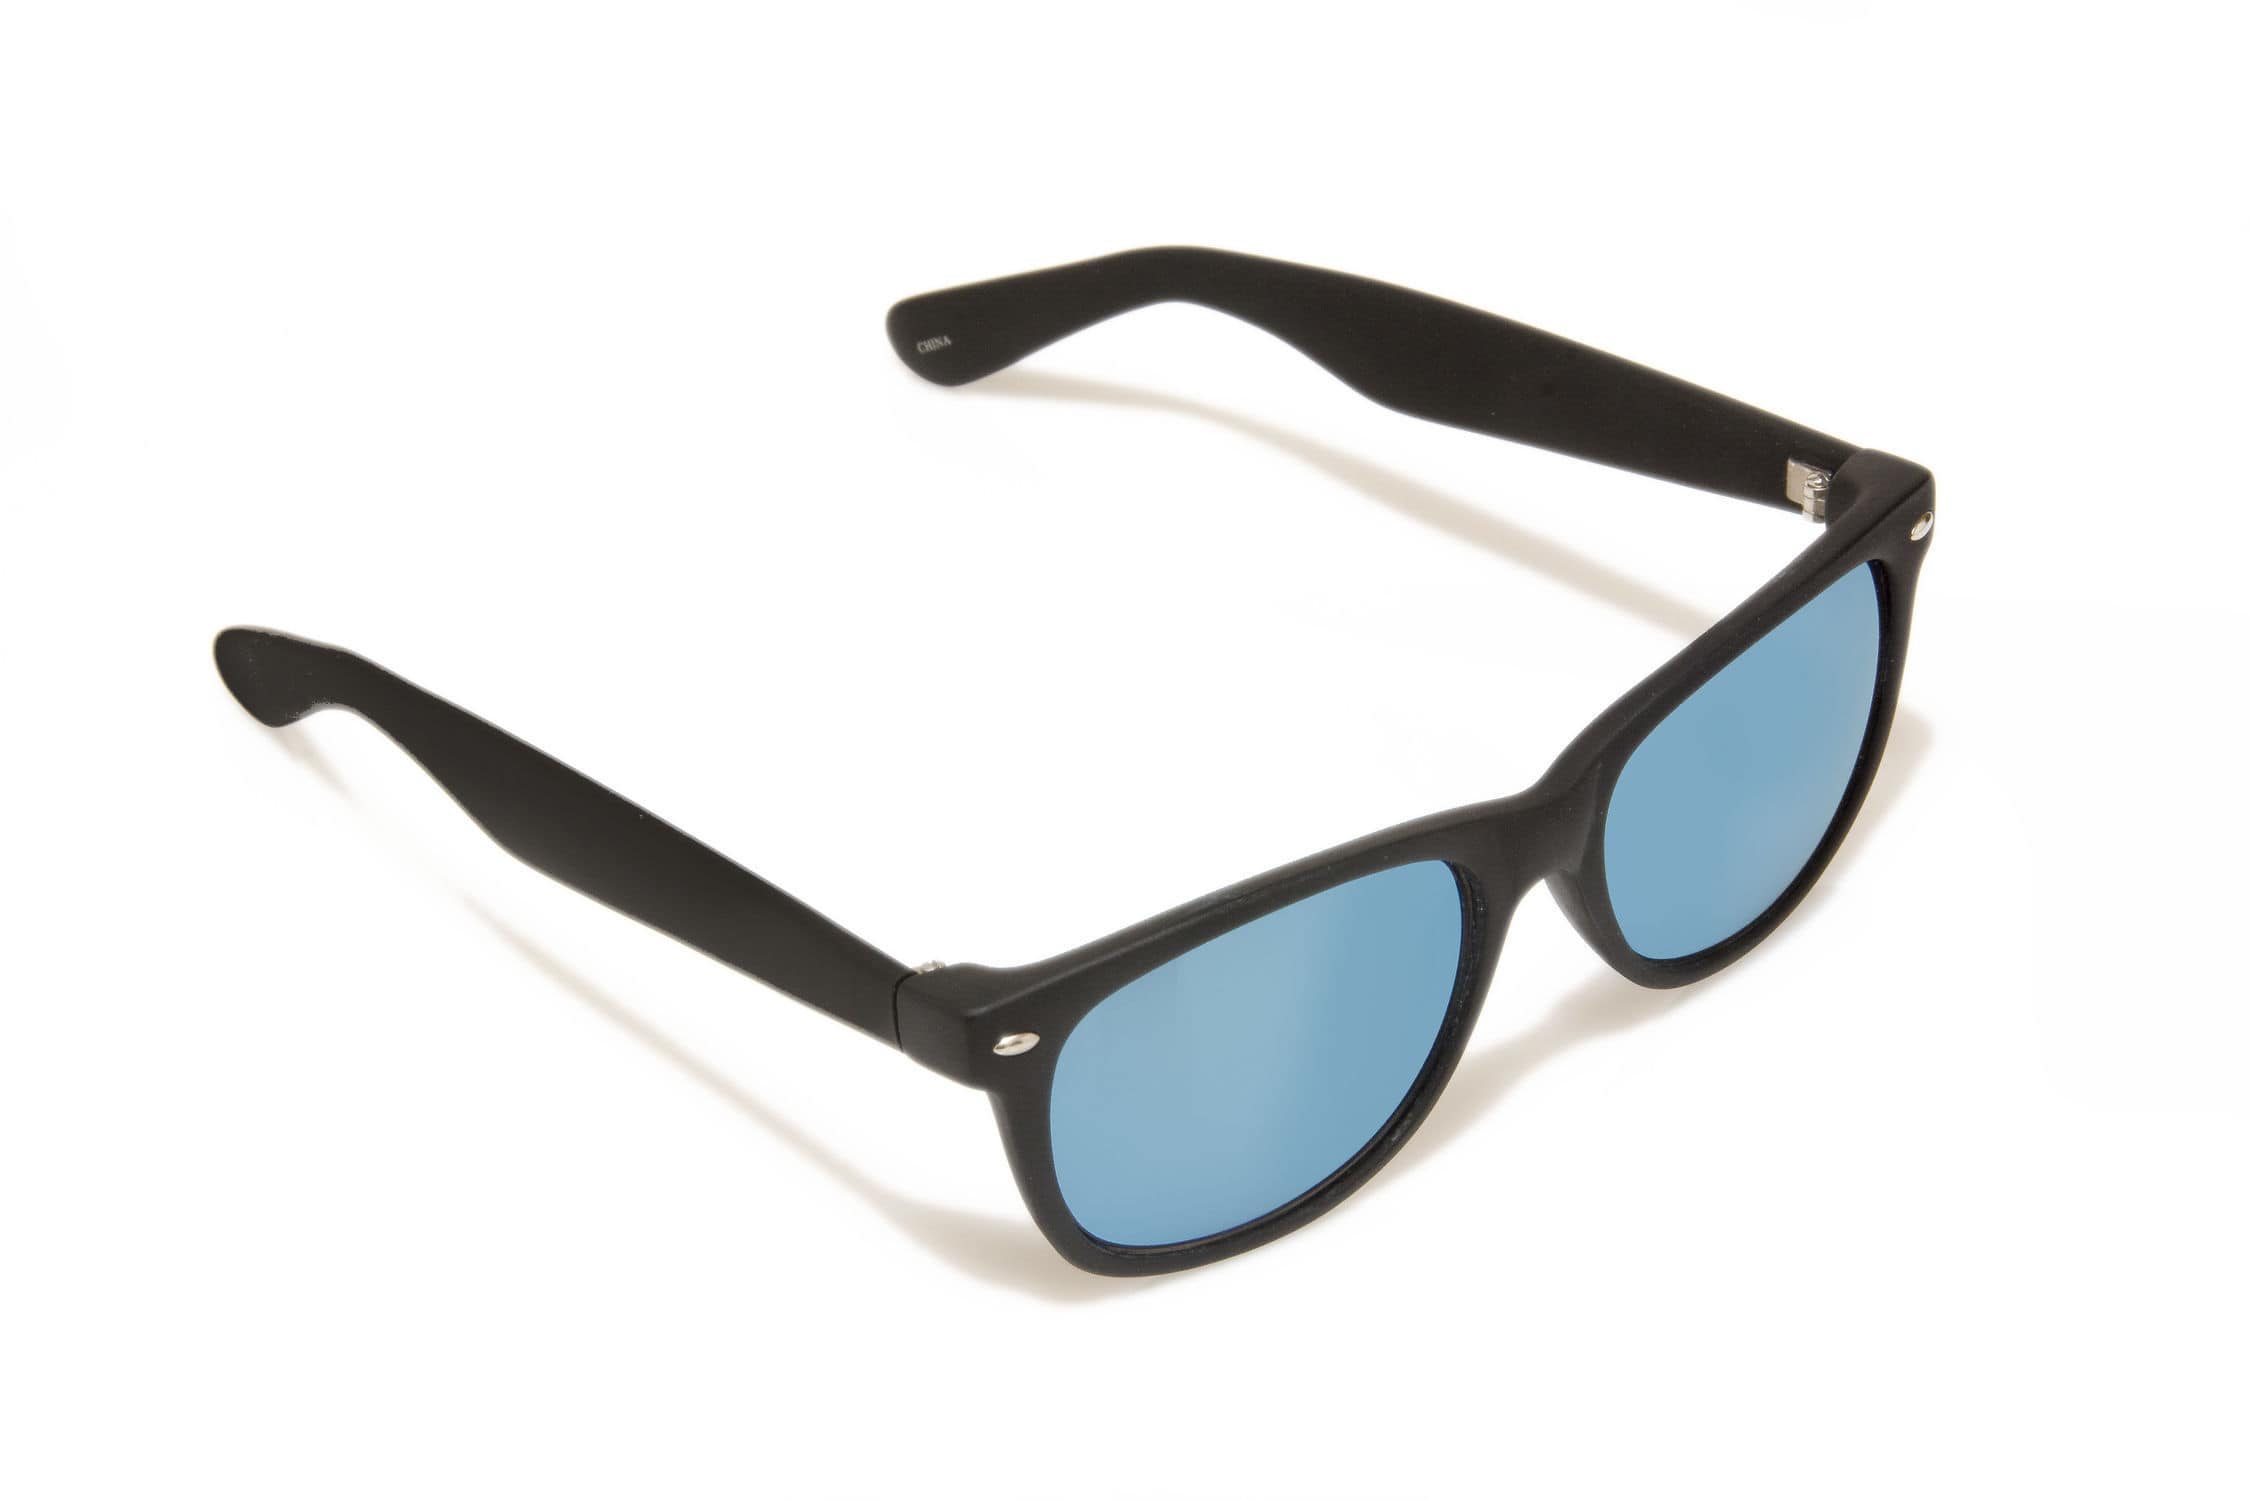 Sun glasses / for pilots / LCD auto-darkening - Iconic XG-1 - Zurich